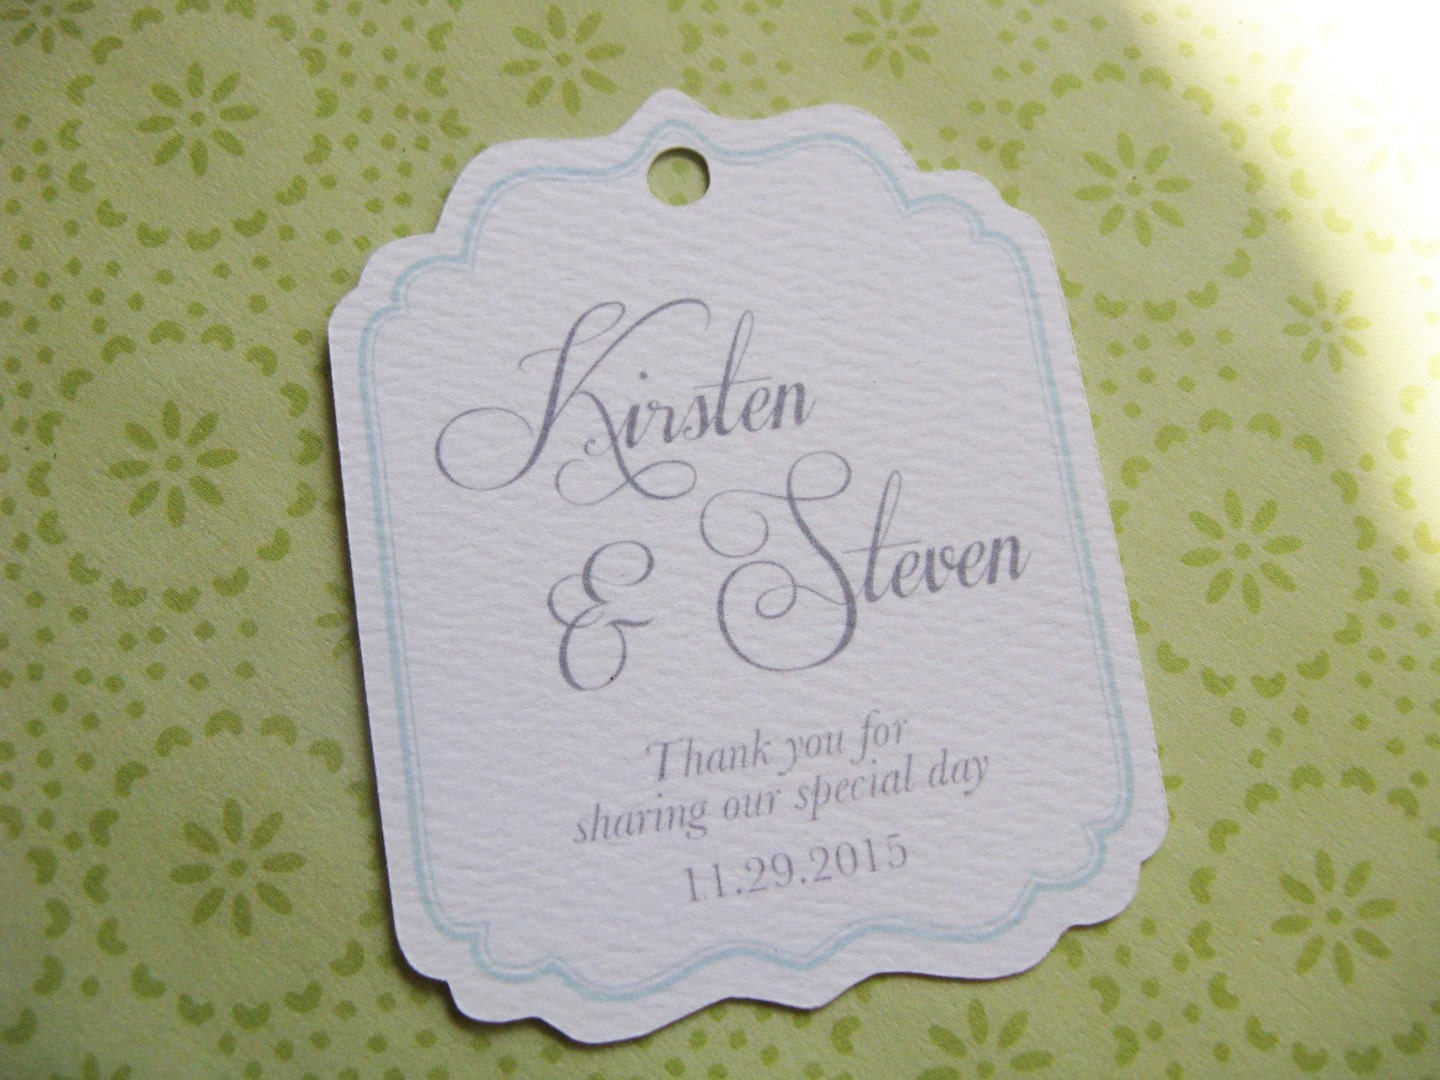 Wedding Favor Tags With Photo : Wedding Favor Tag, Personalized Gift Tags or Shower Favor Tags, Custom ...